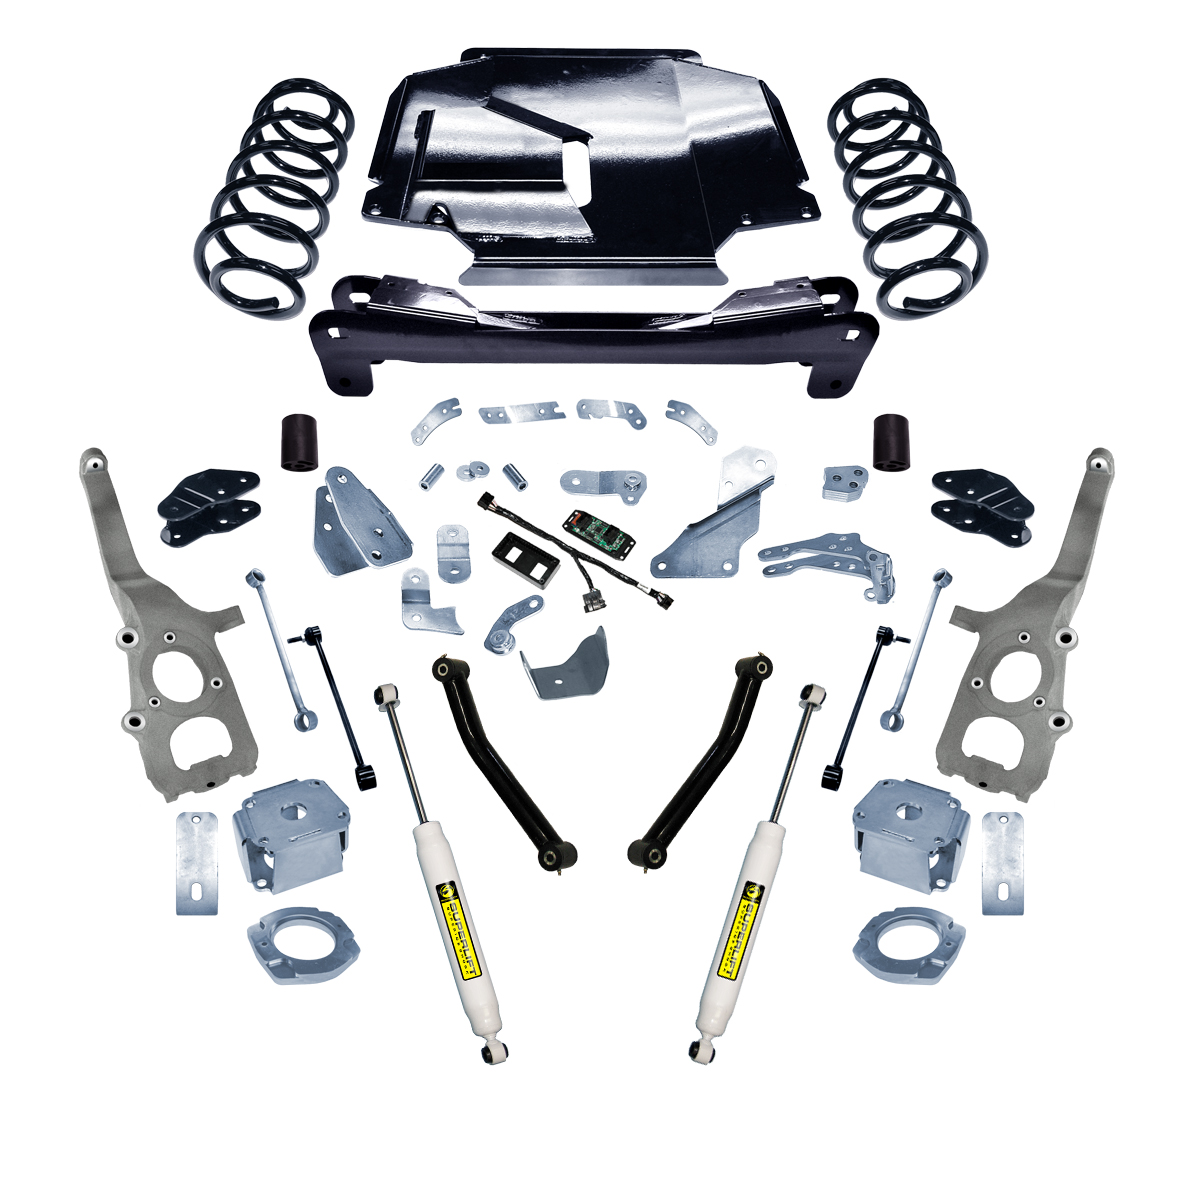 4 Inch Jeep Grand Cherokee And  mander 2006 2007 Suspension Lift Kit 4wd also 88 Drift Truck 12101 as well 47200 08080 further Car Parts Placerville likewise Clipart Sewing Needle 1. on toyota pickup lower control arms